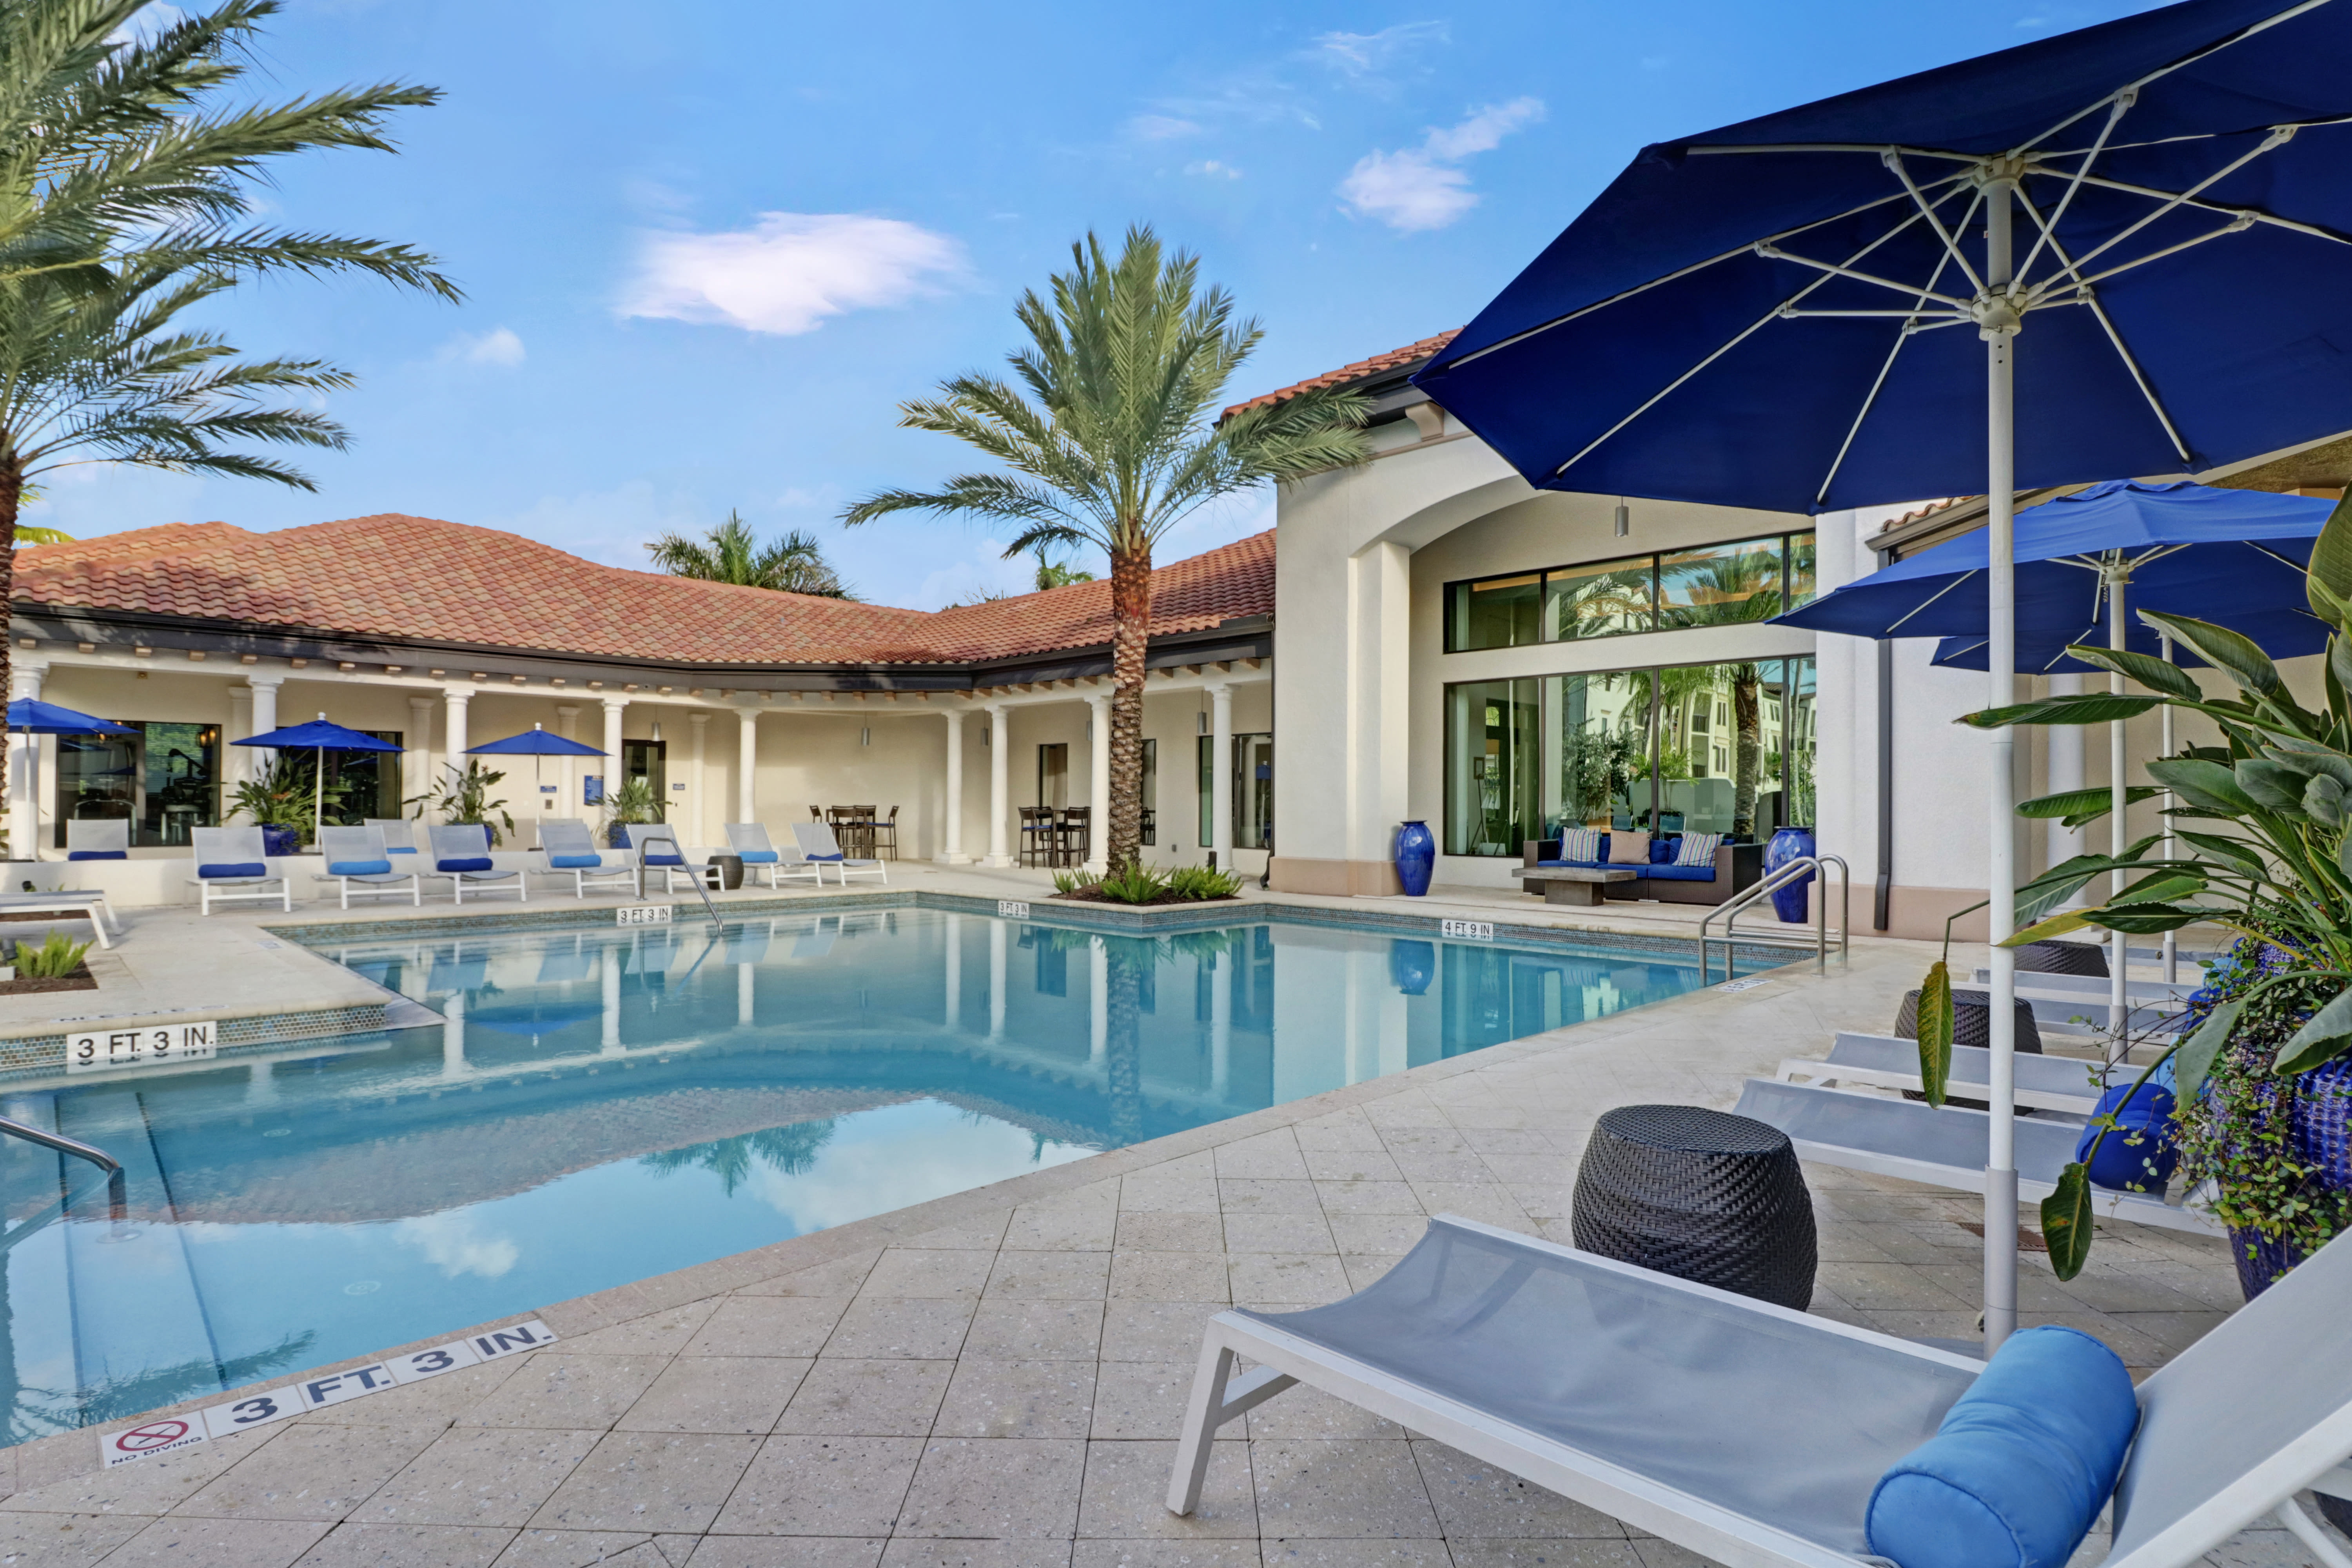 Lounge chair and shade umbrellas by community pool at Linden Pointe in Pompano Beach, Florida